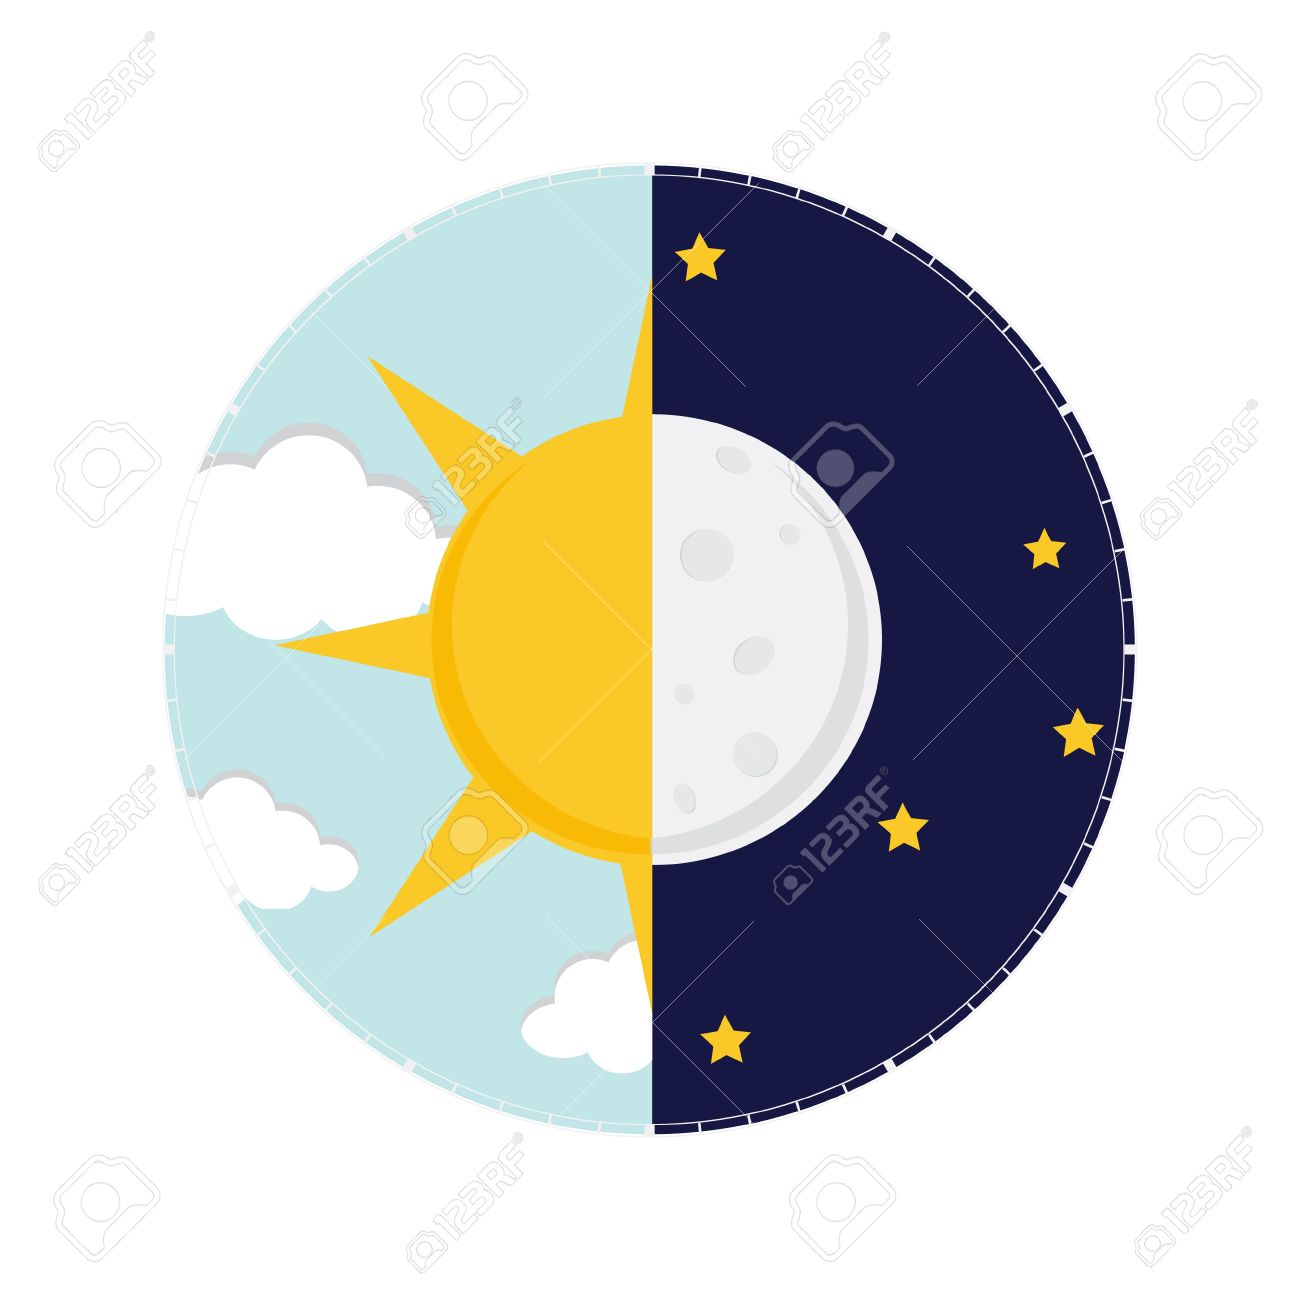 Vector illustration of day and night. Day night concept, sun and moon, day night icon - 55647517